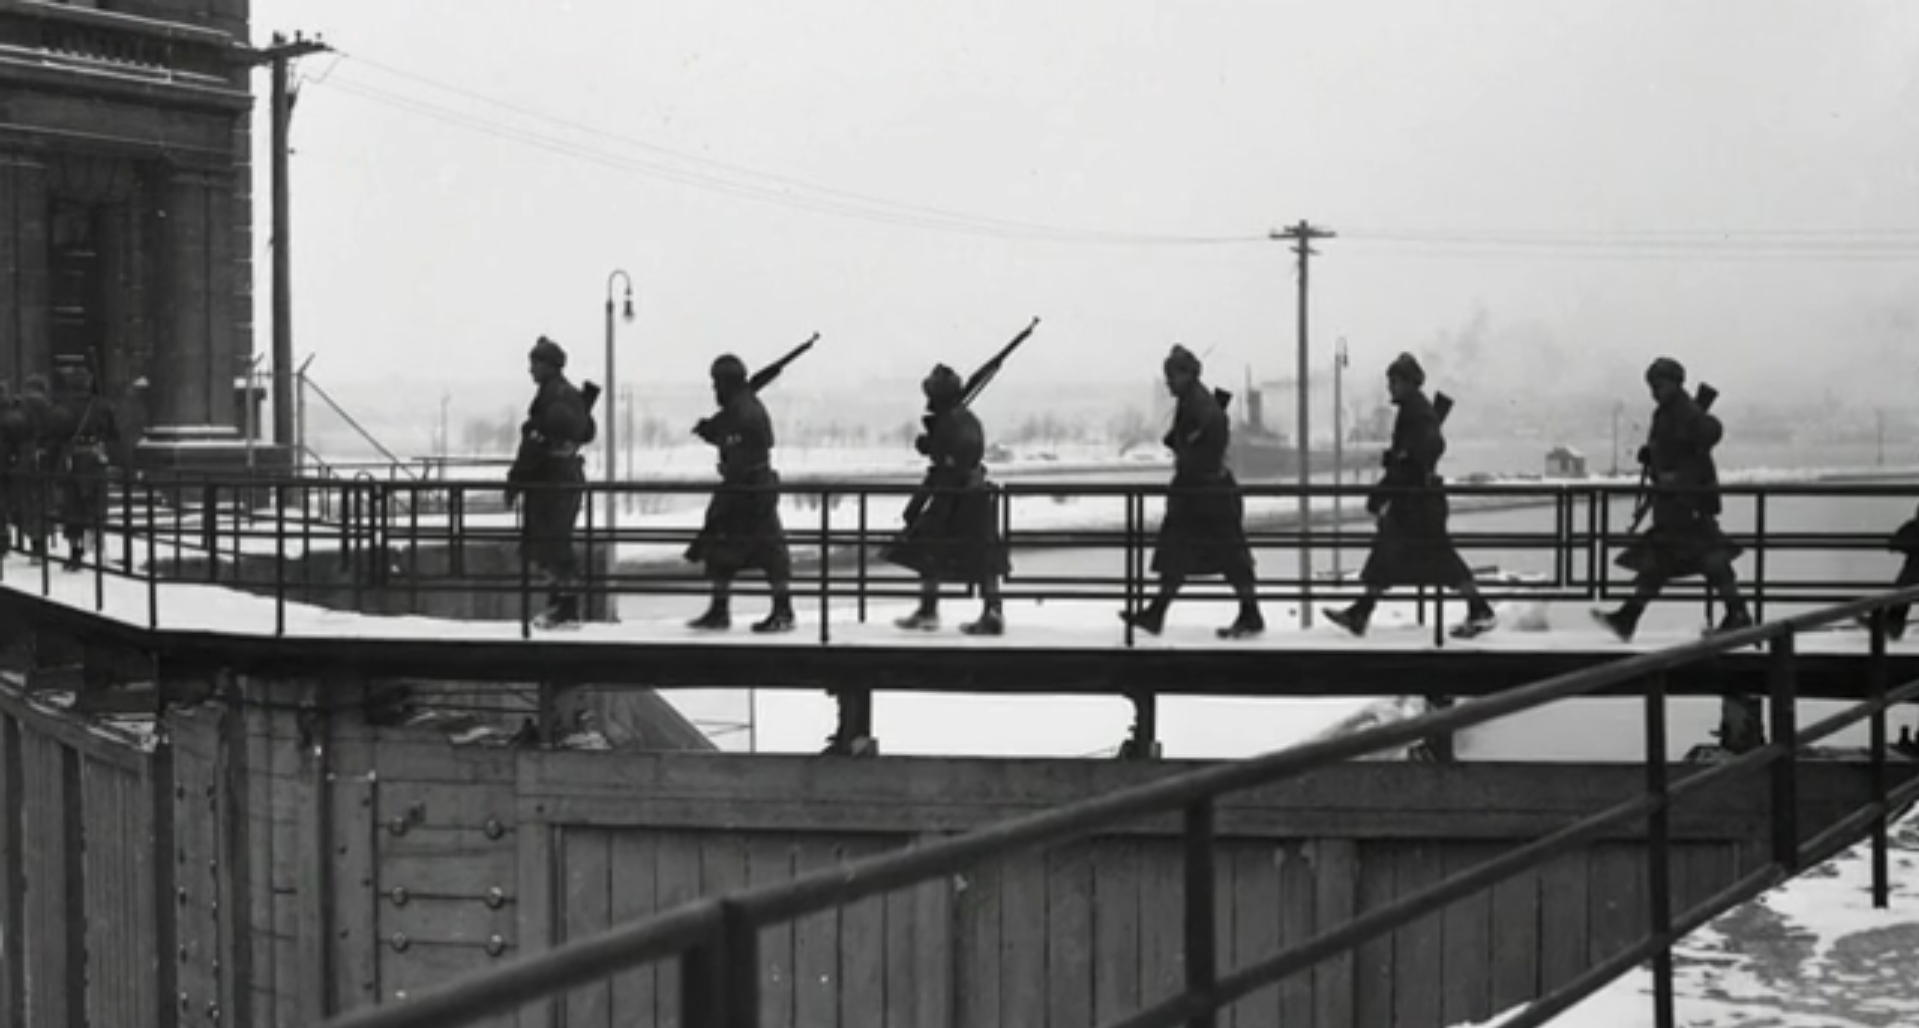 Troops patrolling the gates of the Soo Locks, Sault Ste. Marie, MI, 1940's. (MyNorth)